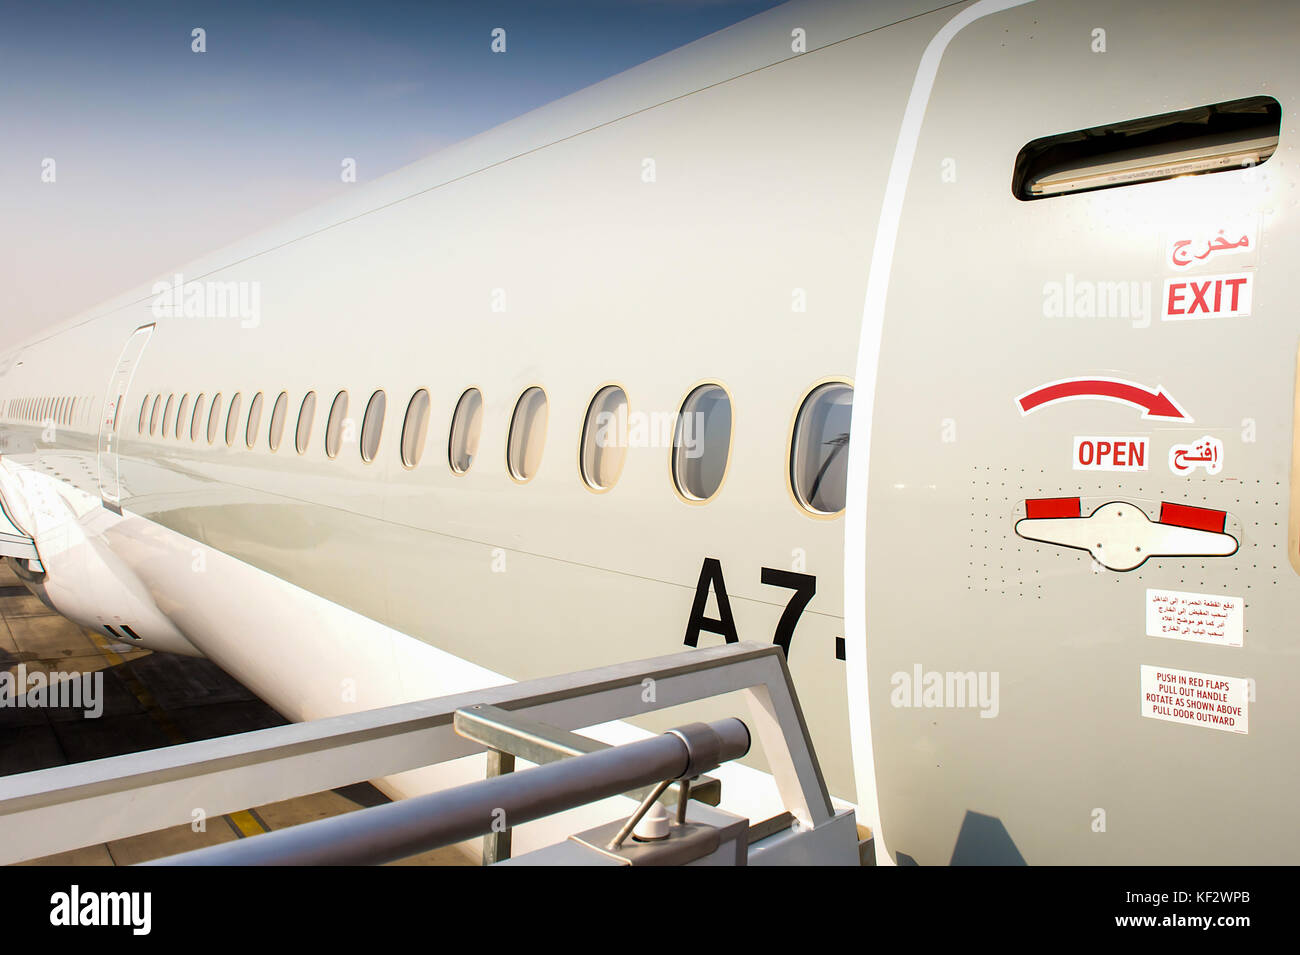 The fuselage of a large Boeing plane on the tarmac at an international airport. - Stock Image